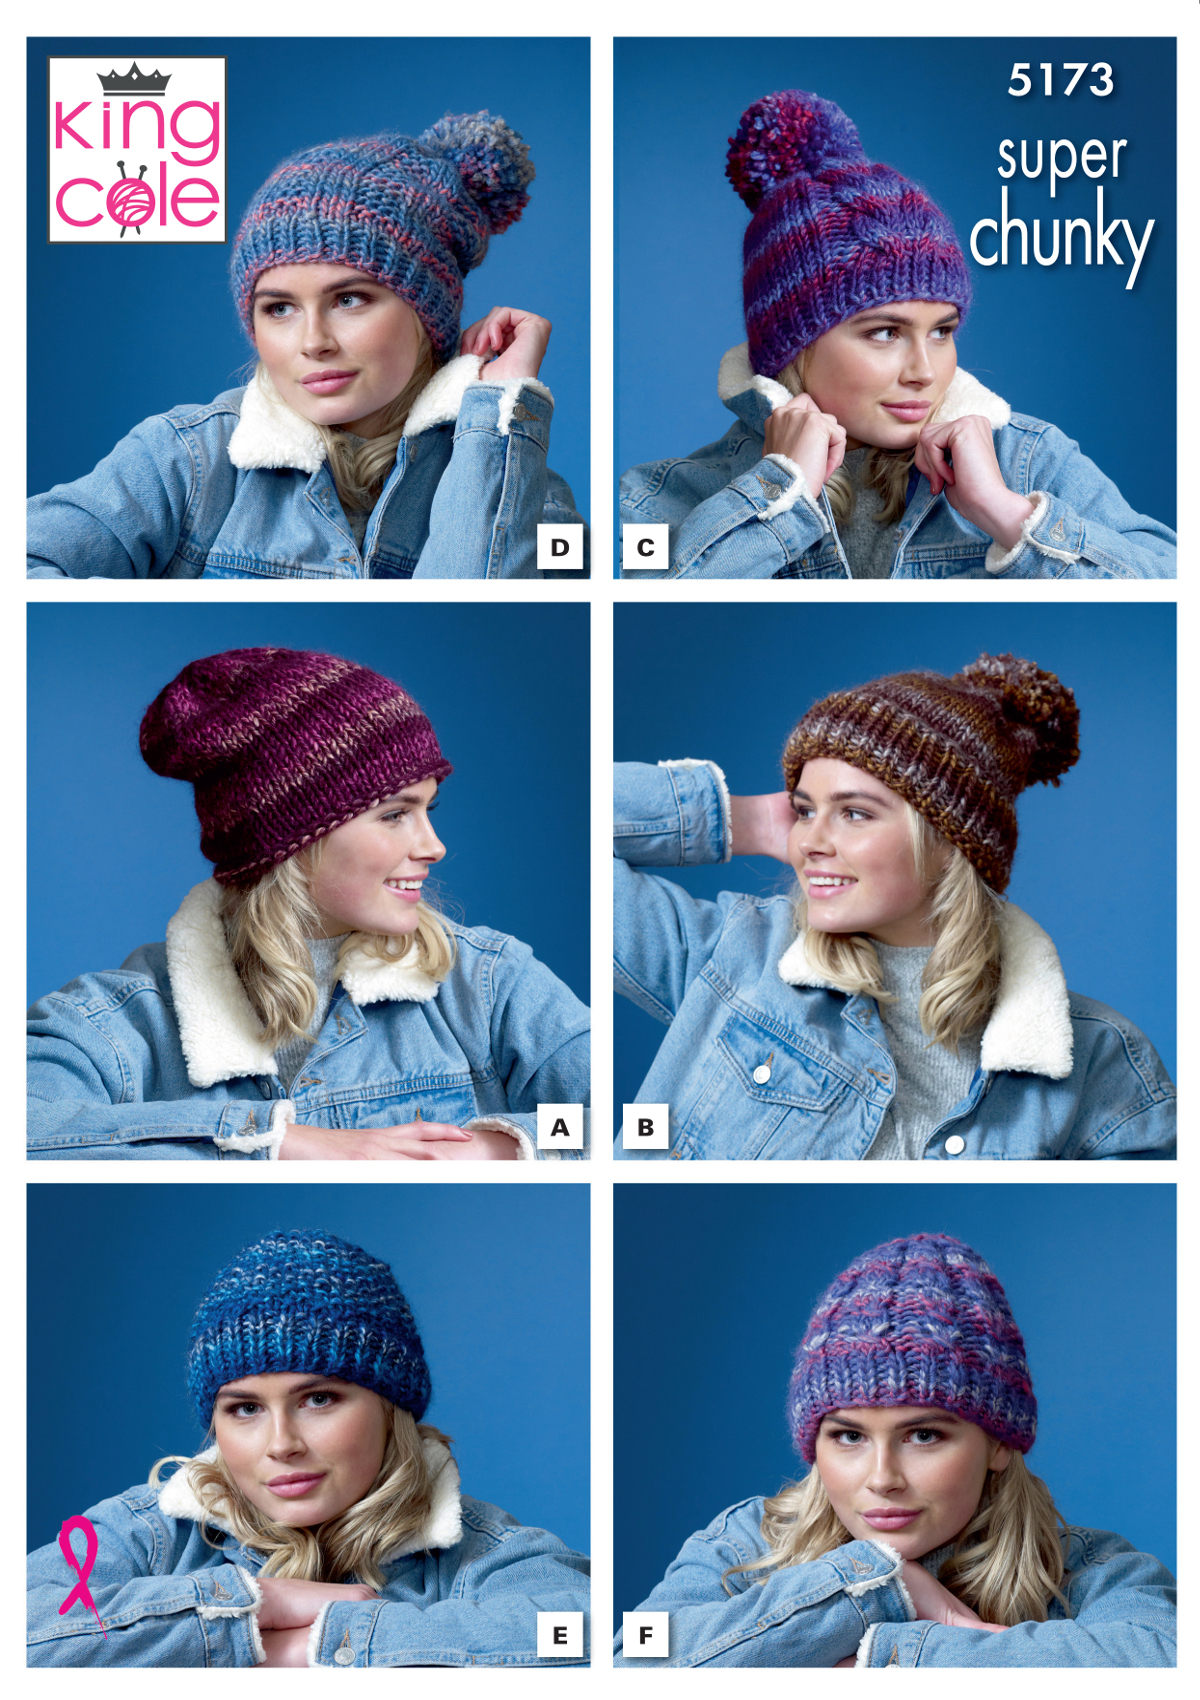 44200cd9725715 Super Chunky Hat knitting pattern (free download). VeniceSM. Please look at  images below for the chart showing measurements